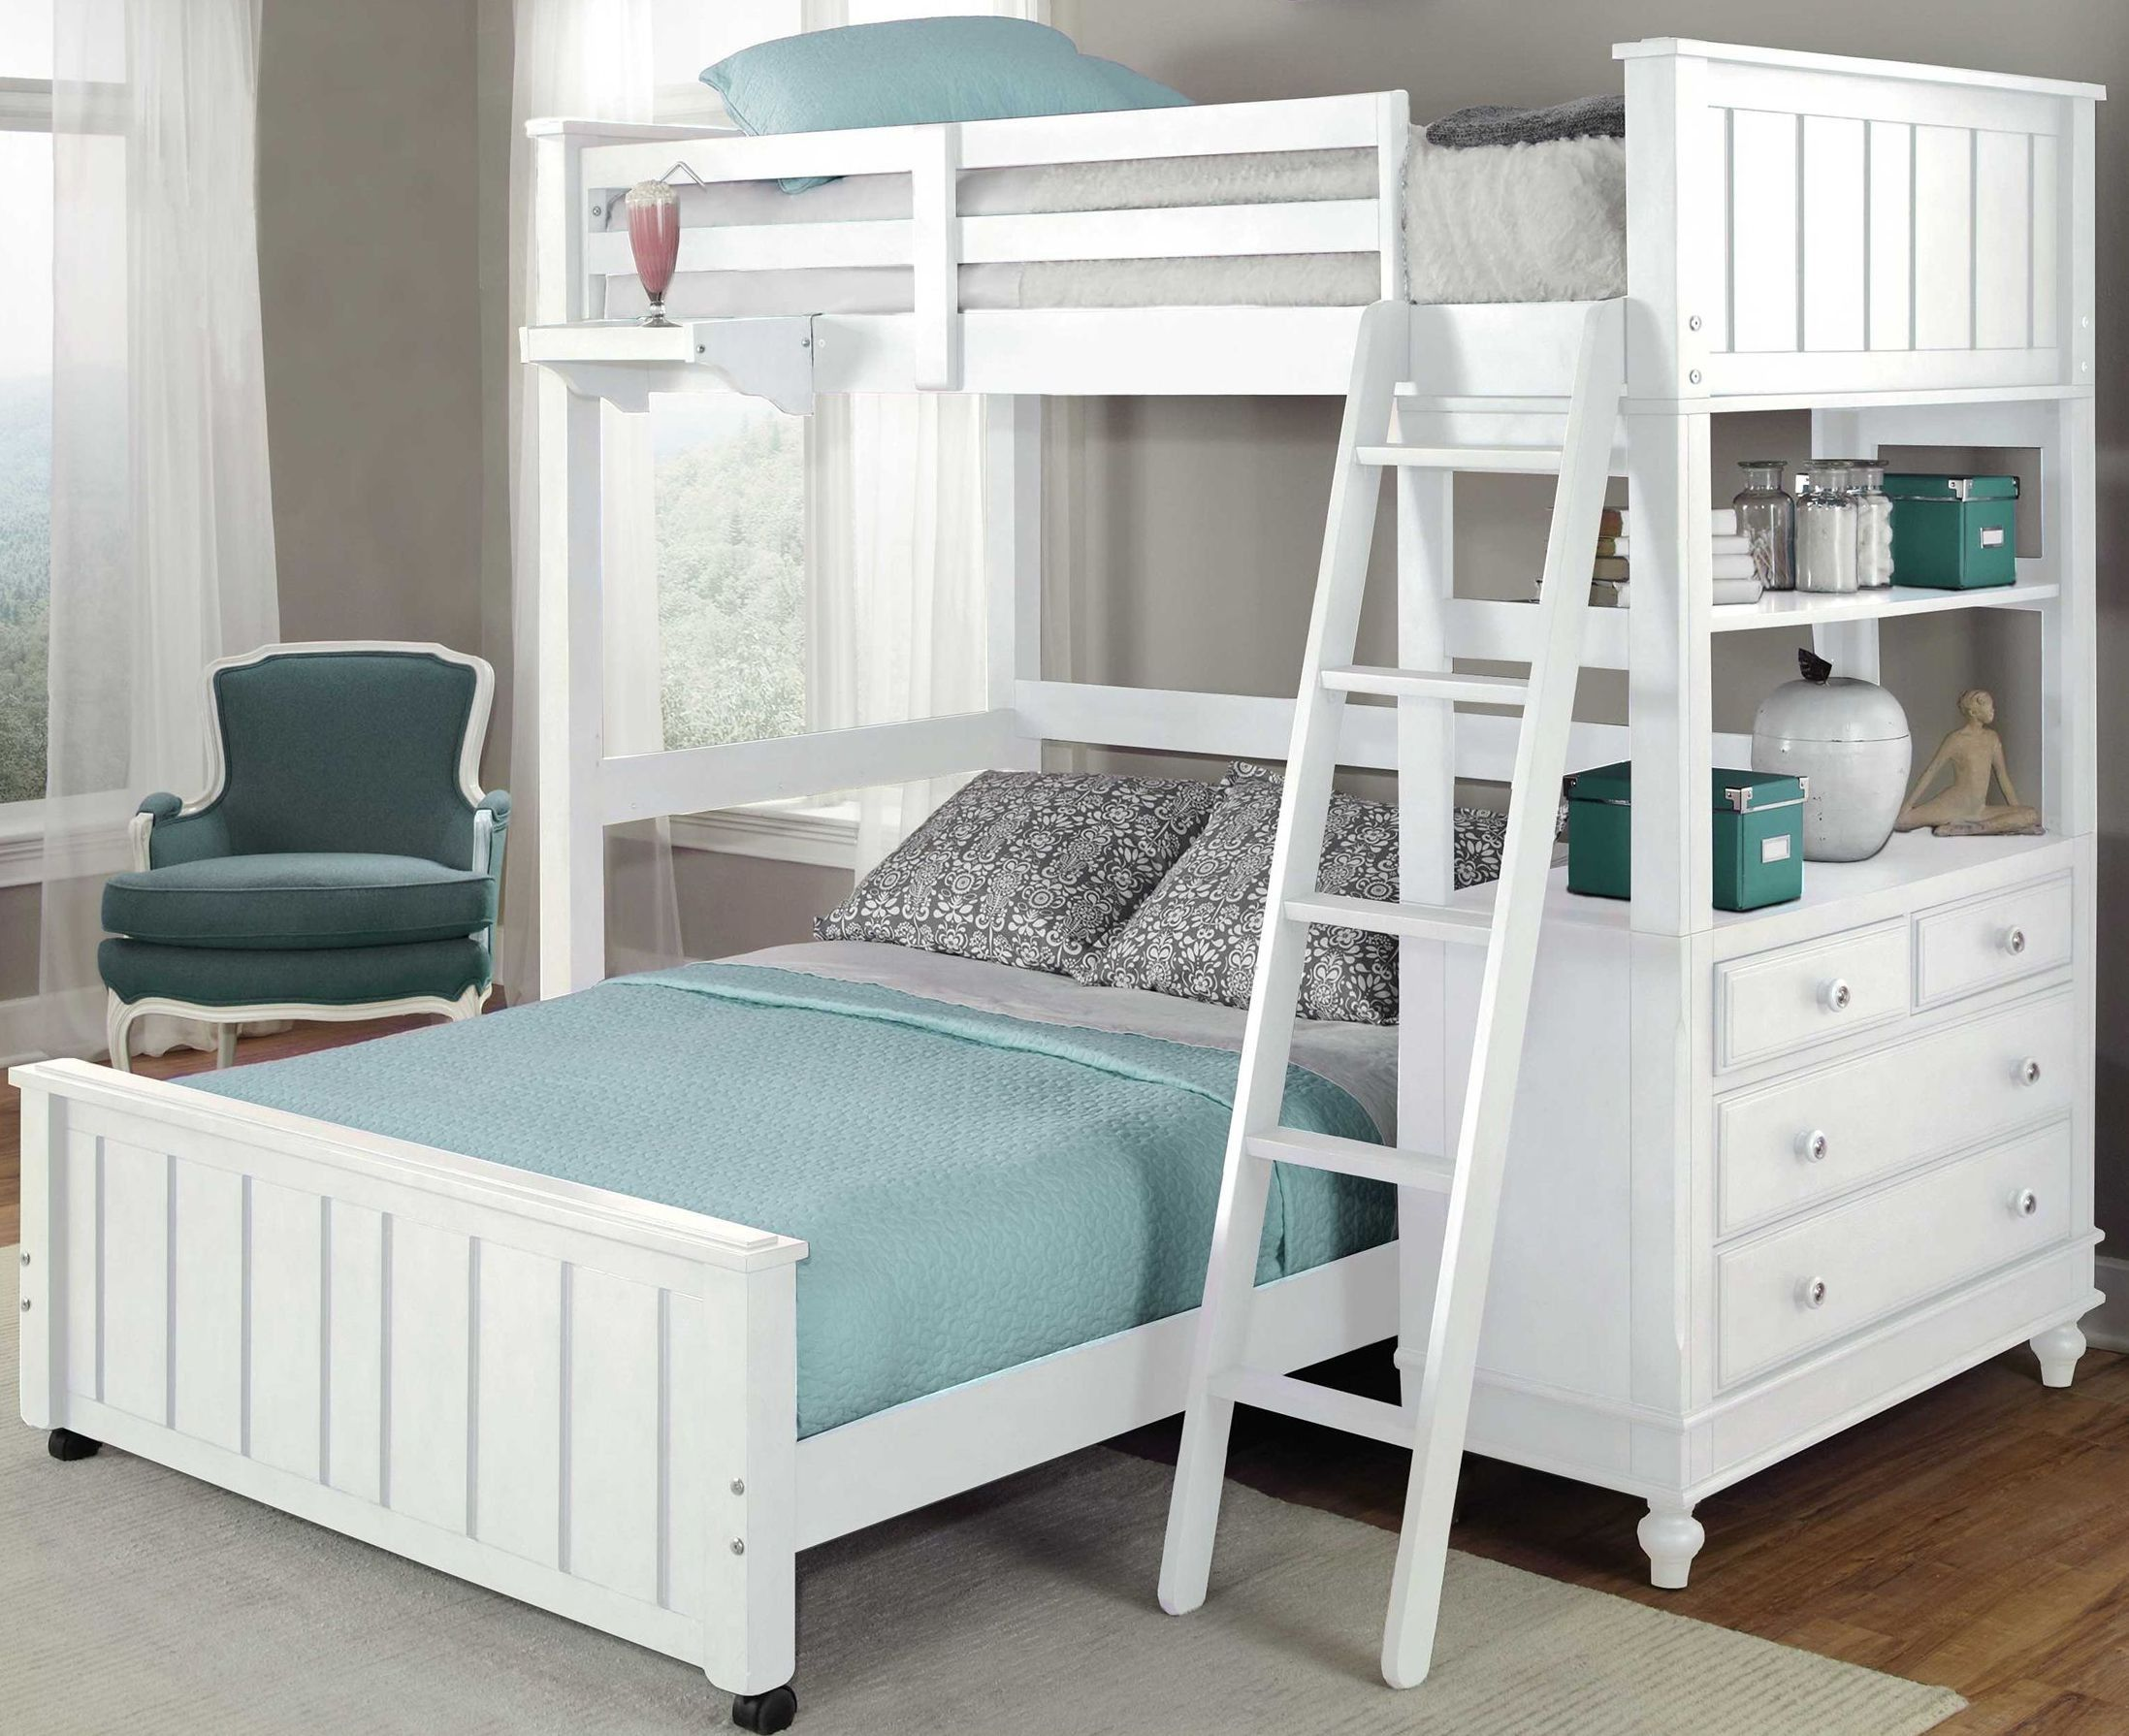 Lake House White Twin Loft Bed With Full Lower Bunk Beds Designs Stairs